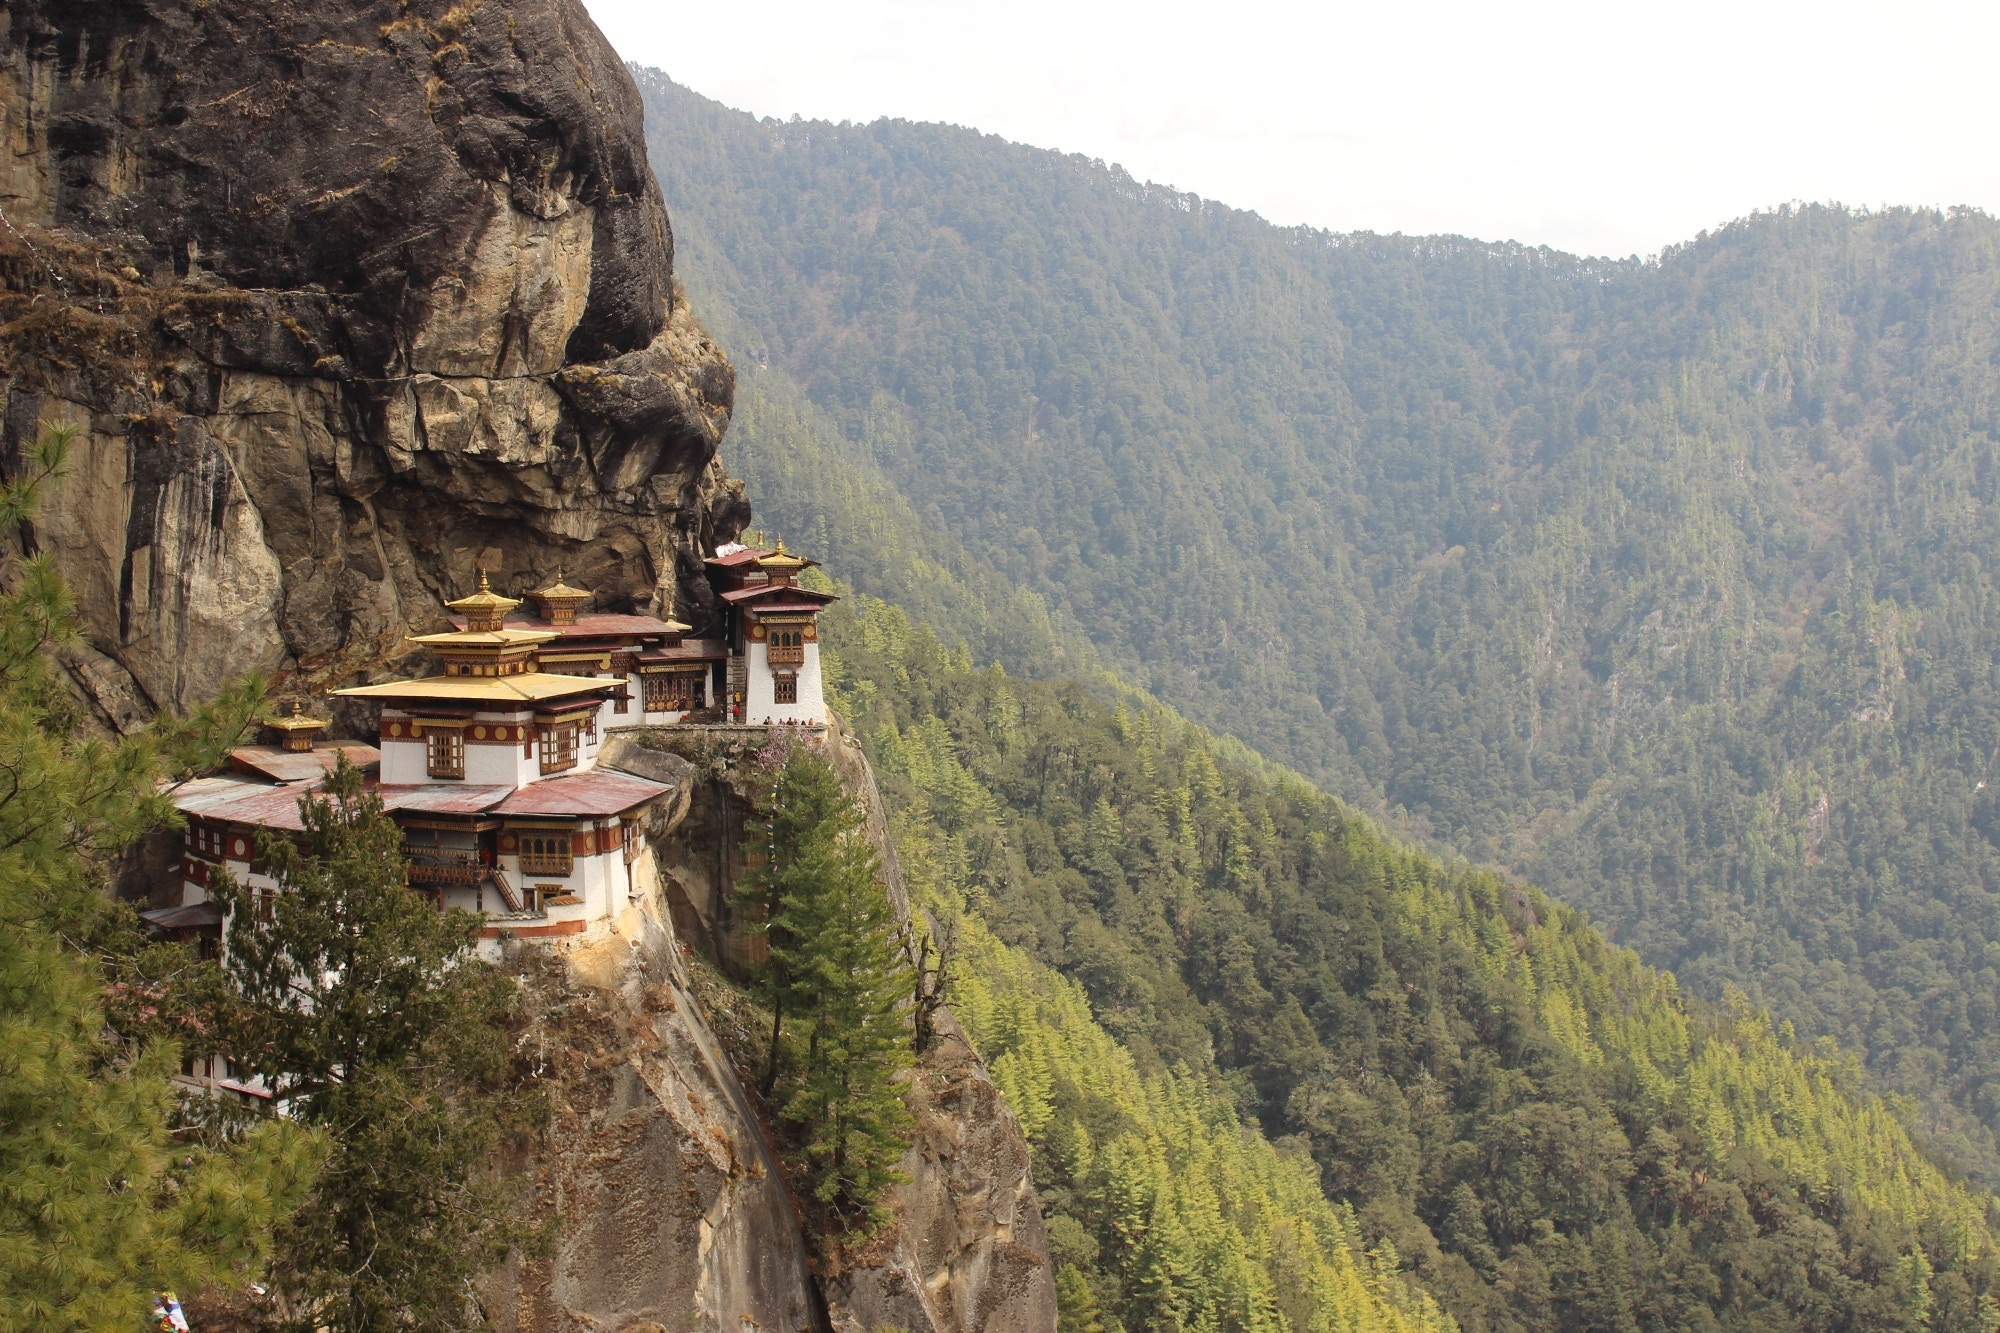 The remote Tiger's Nest temple in Bhutan © Kalyan Panja